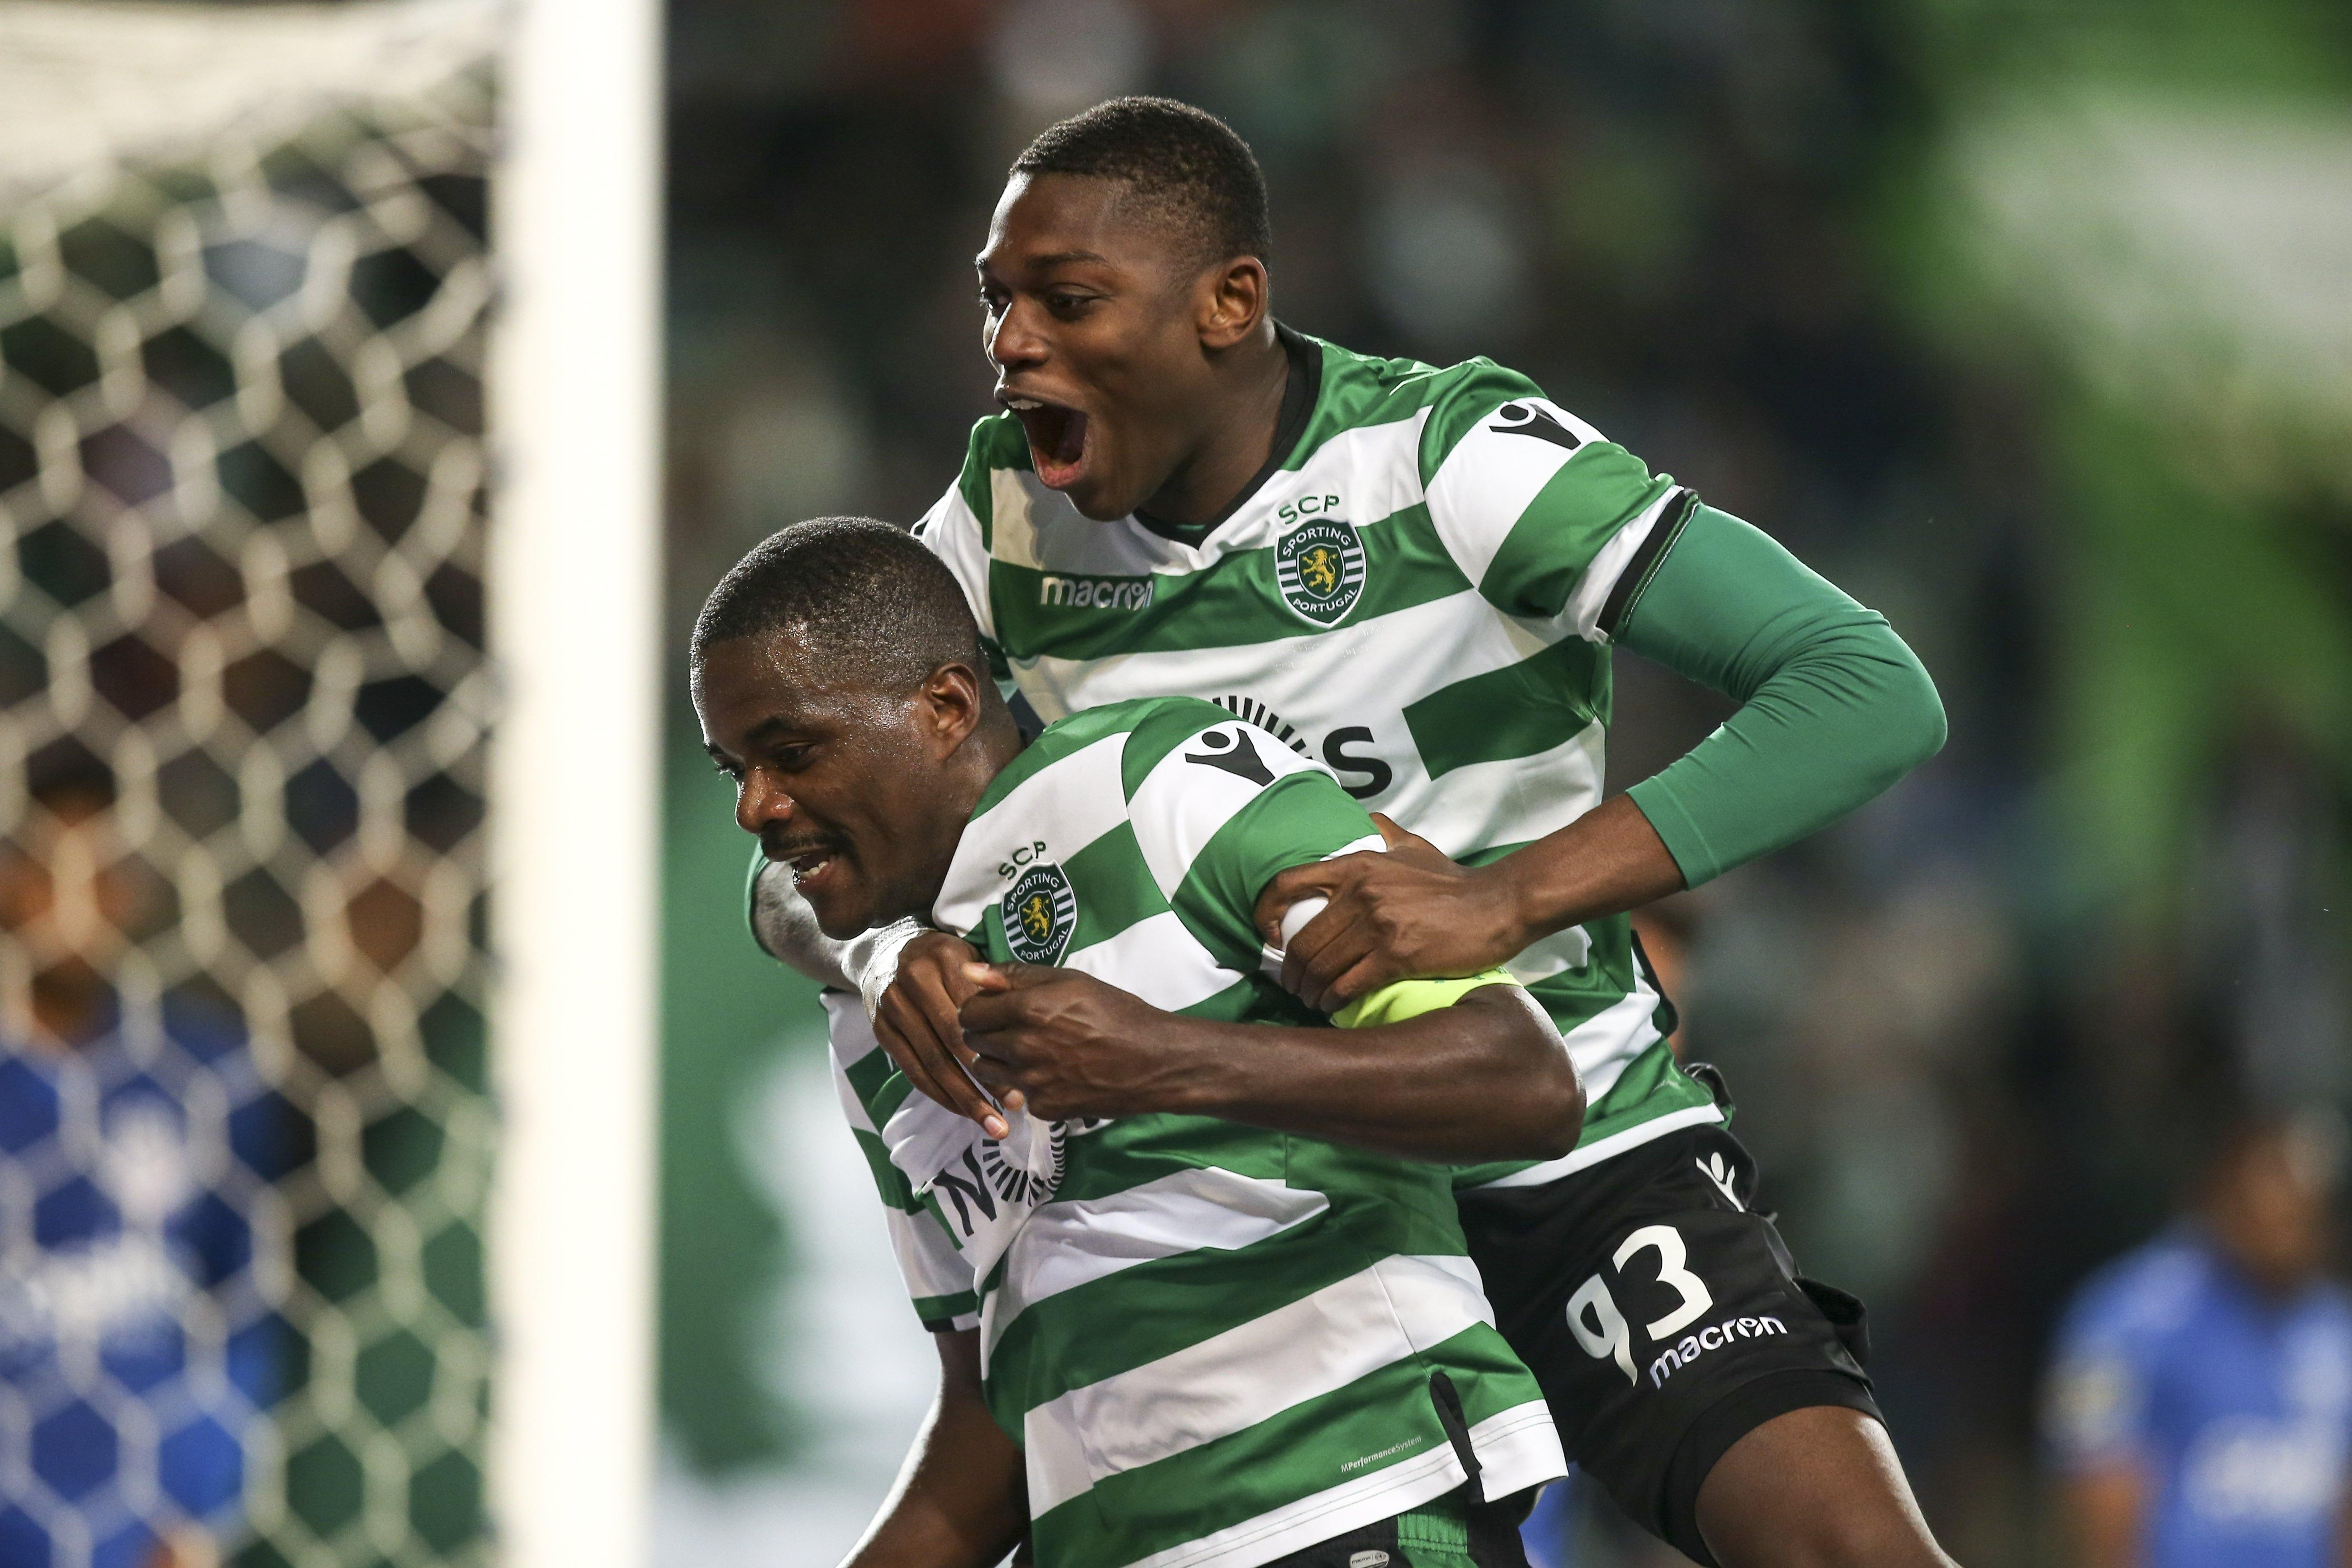 Carvalho is a familiar name in the transfer window